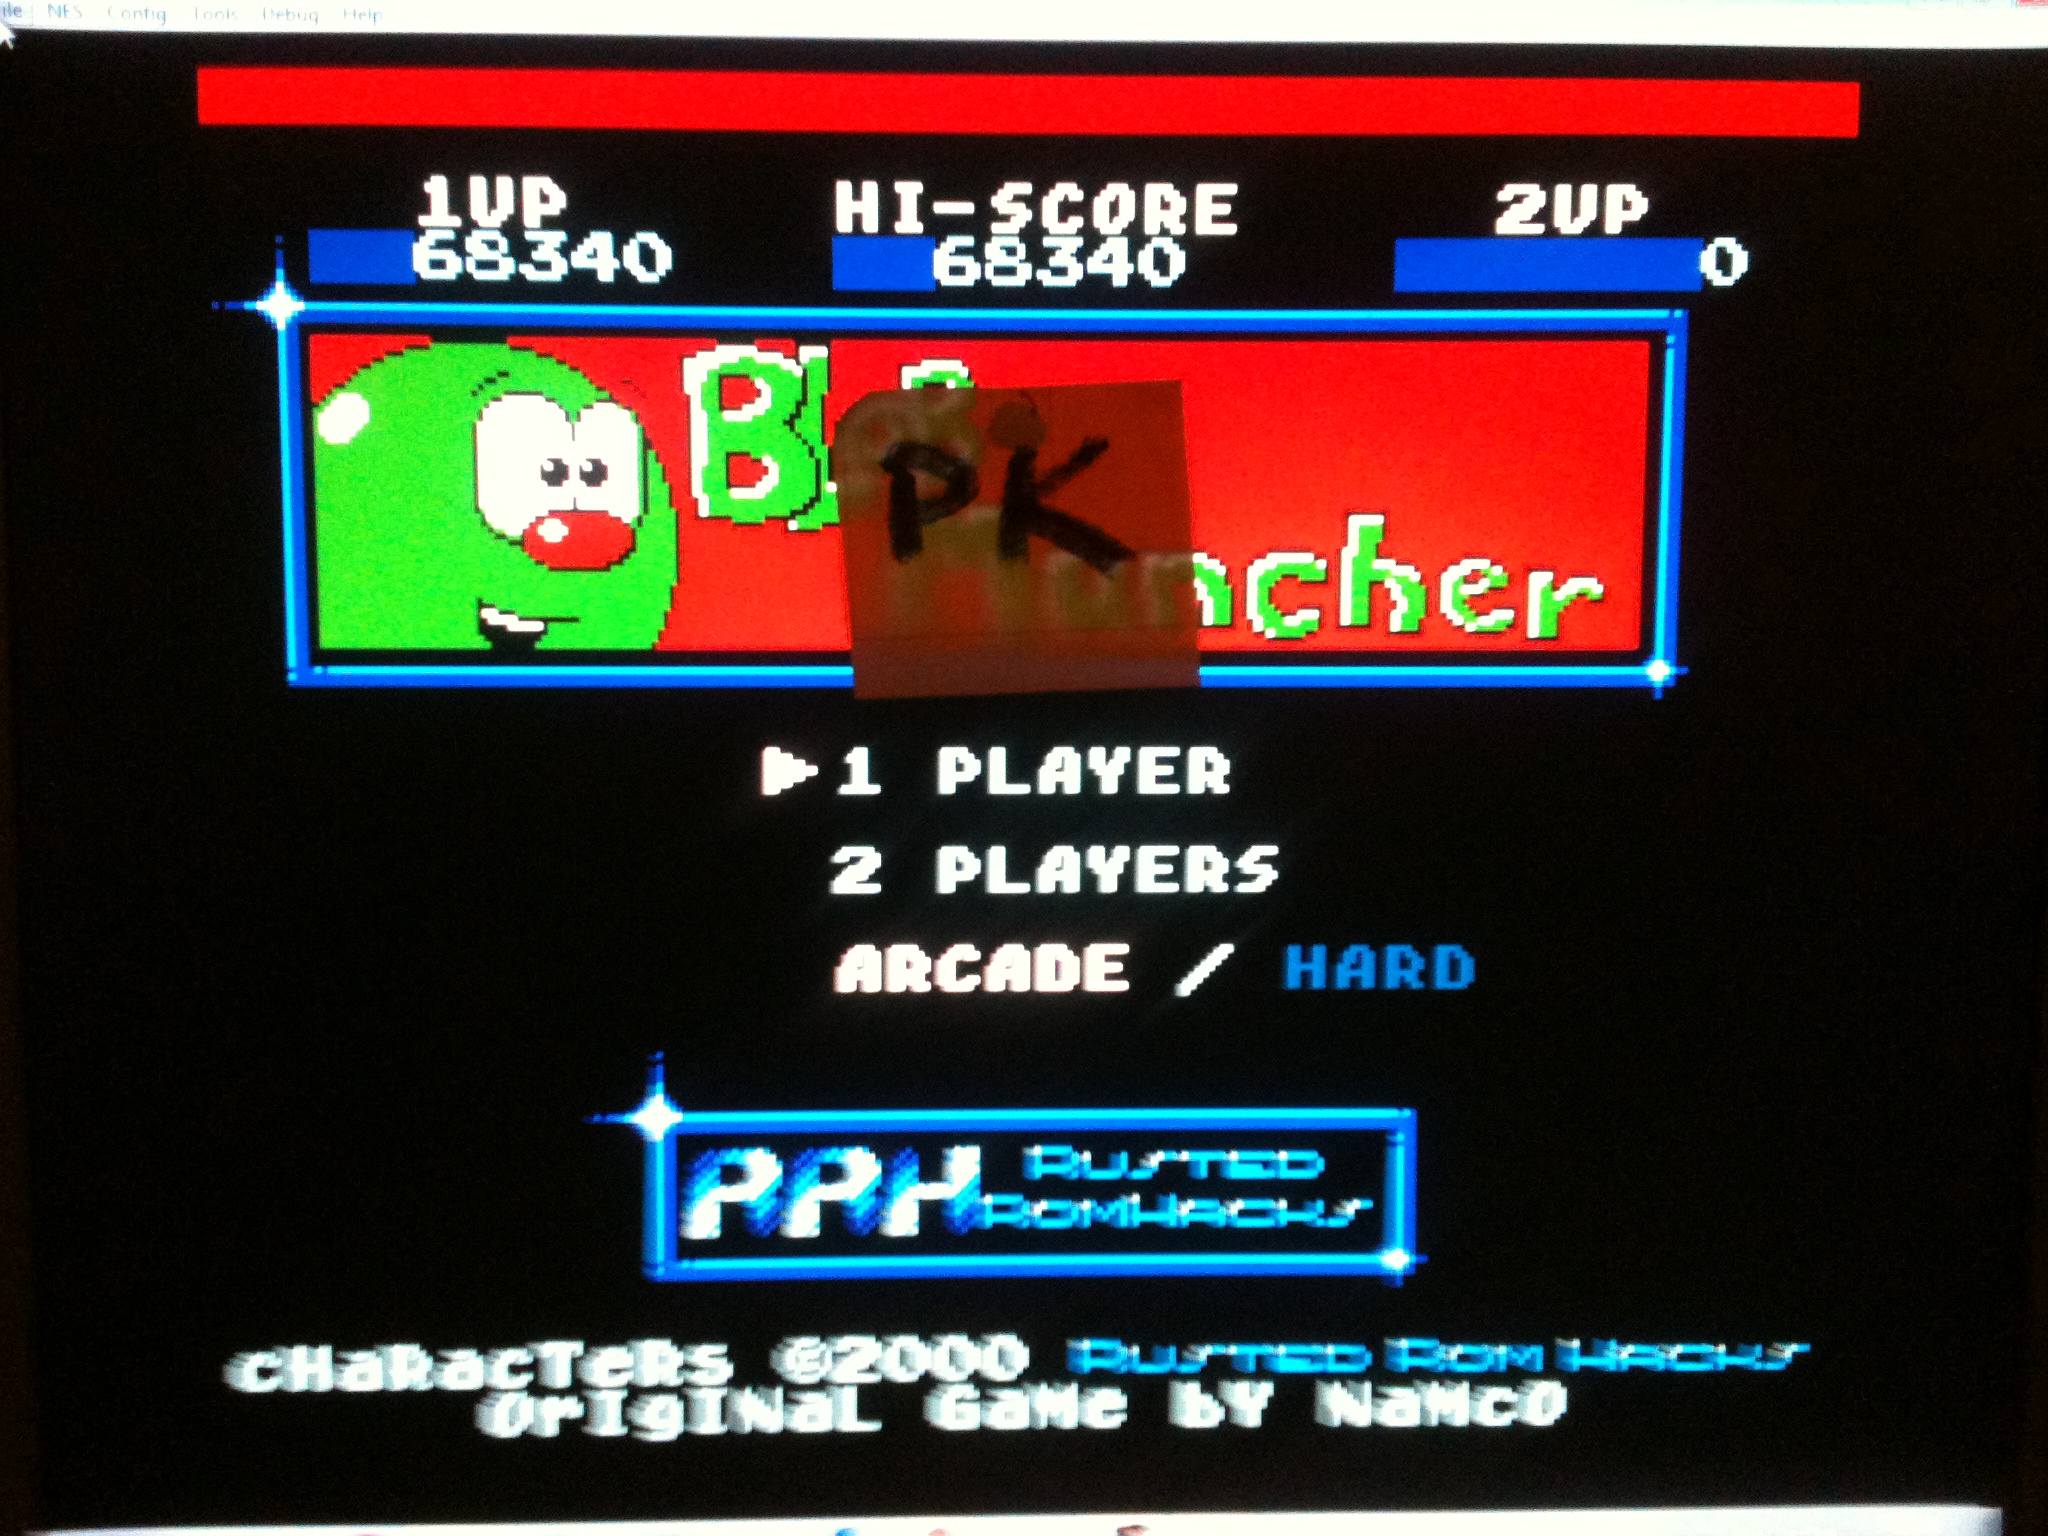 kernzy: Blob Muncher: Arcade (NES/Famicom Emulated) 68,340 points on 2015-11-21 06:15:07